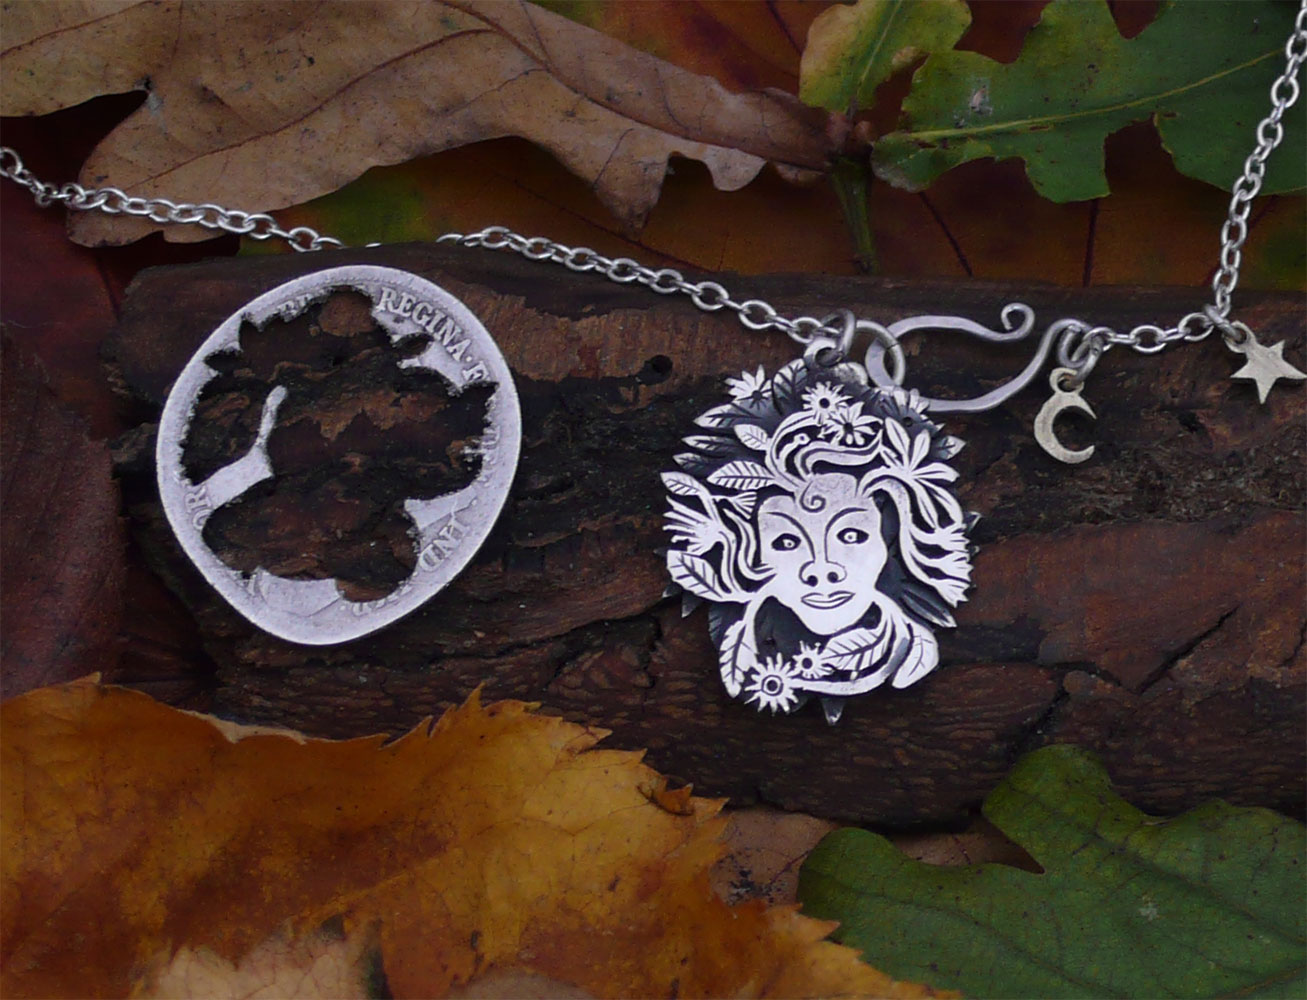 Handmade and recycled using silver coins